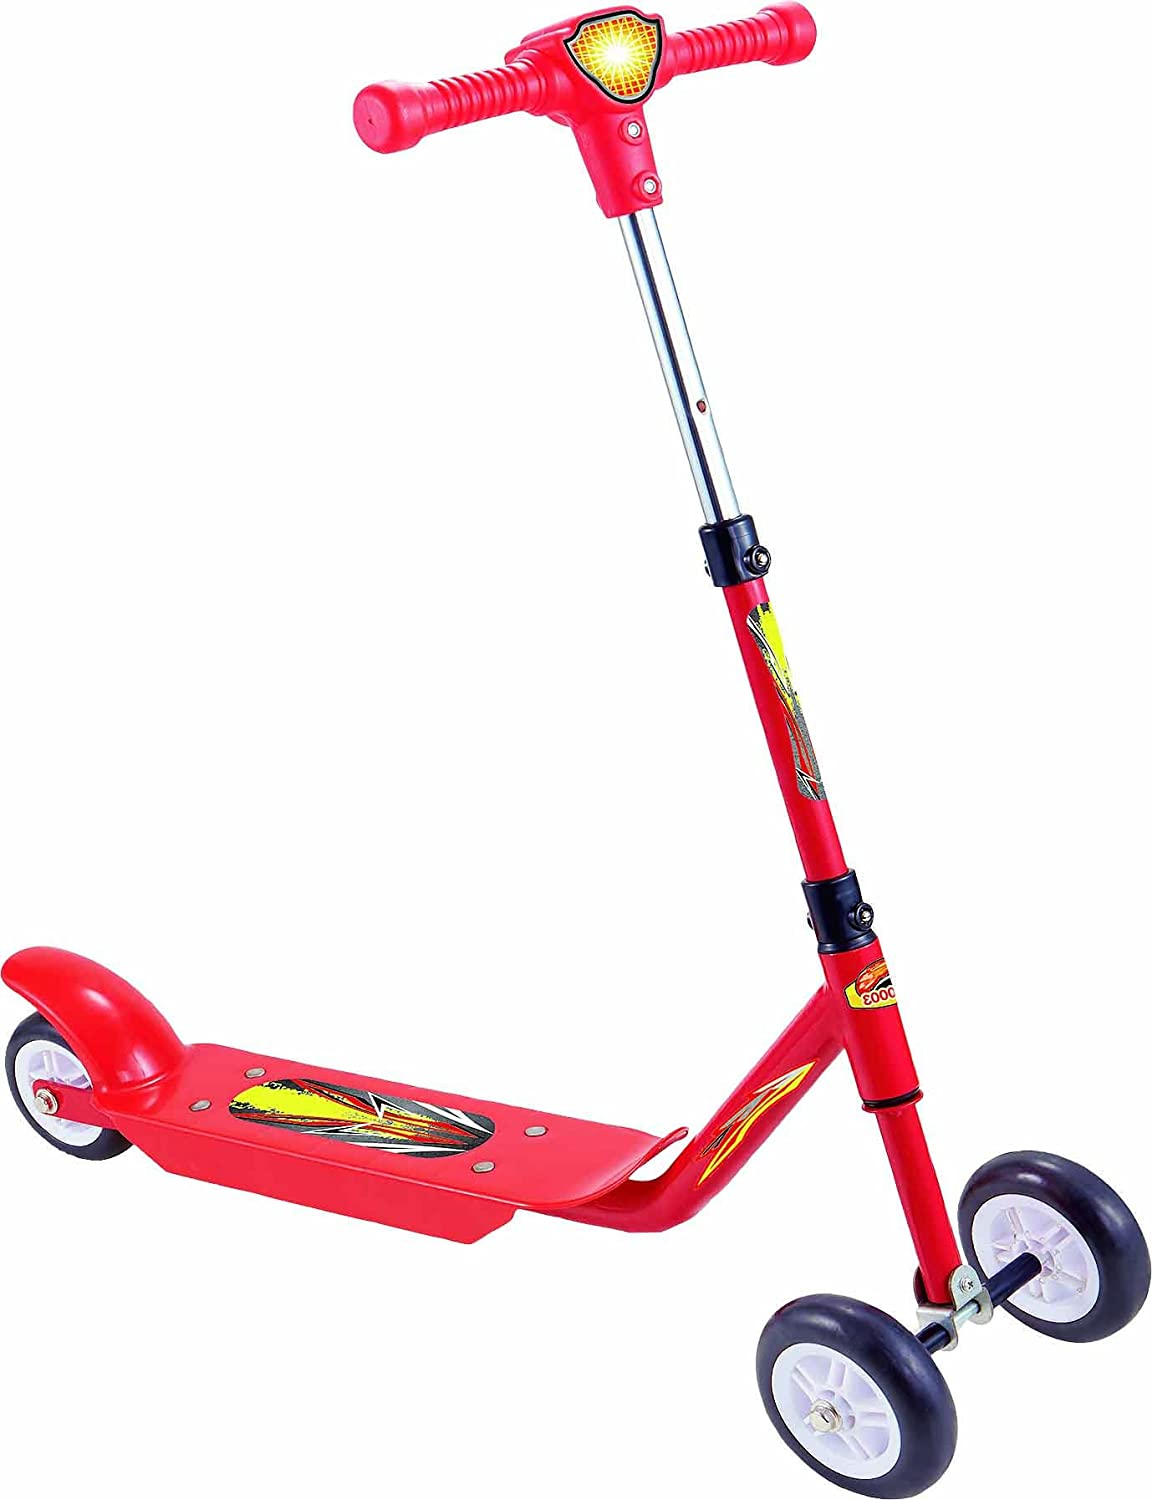 Woodfield - Patinete infantil rosa Scooter Motion 3 rueda ...